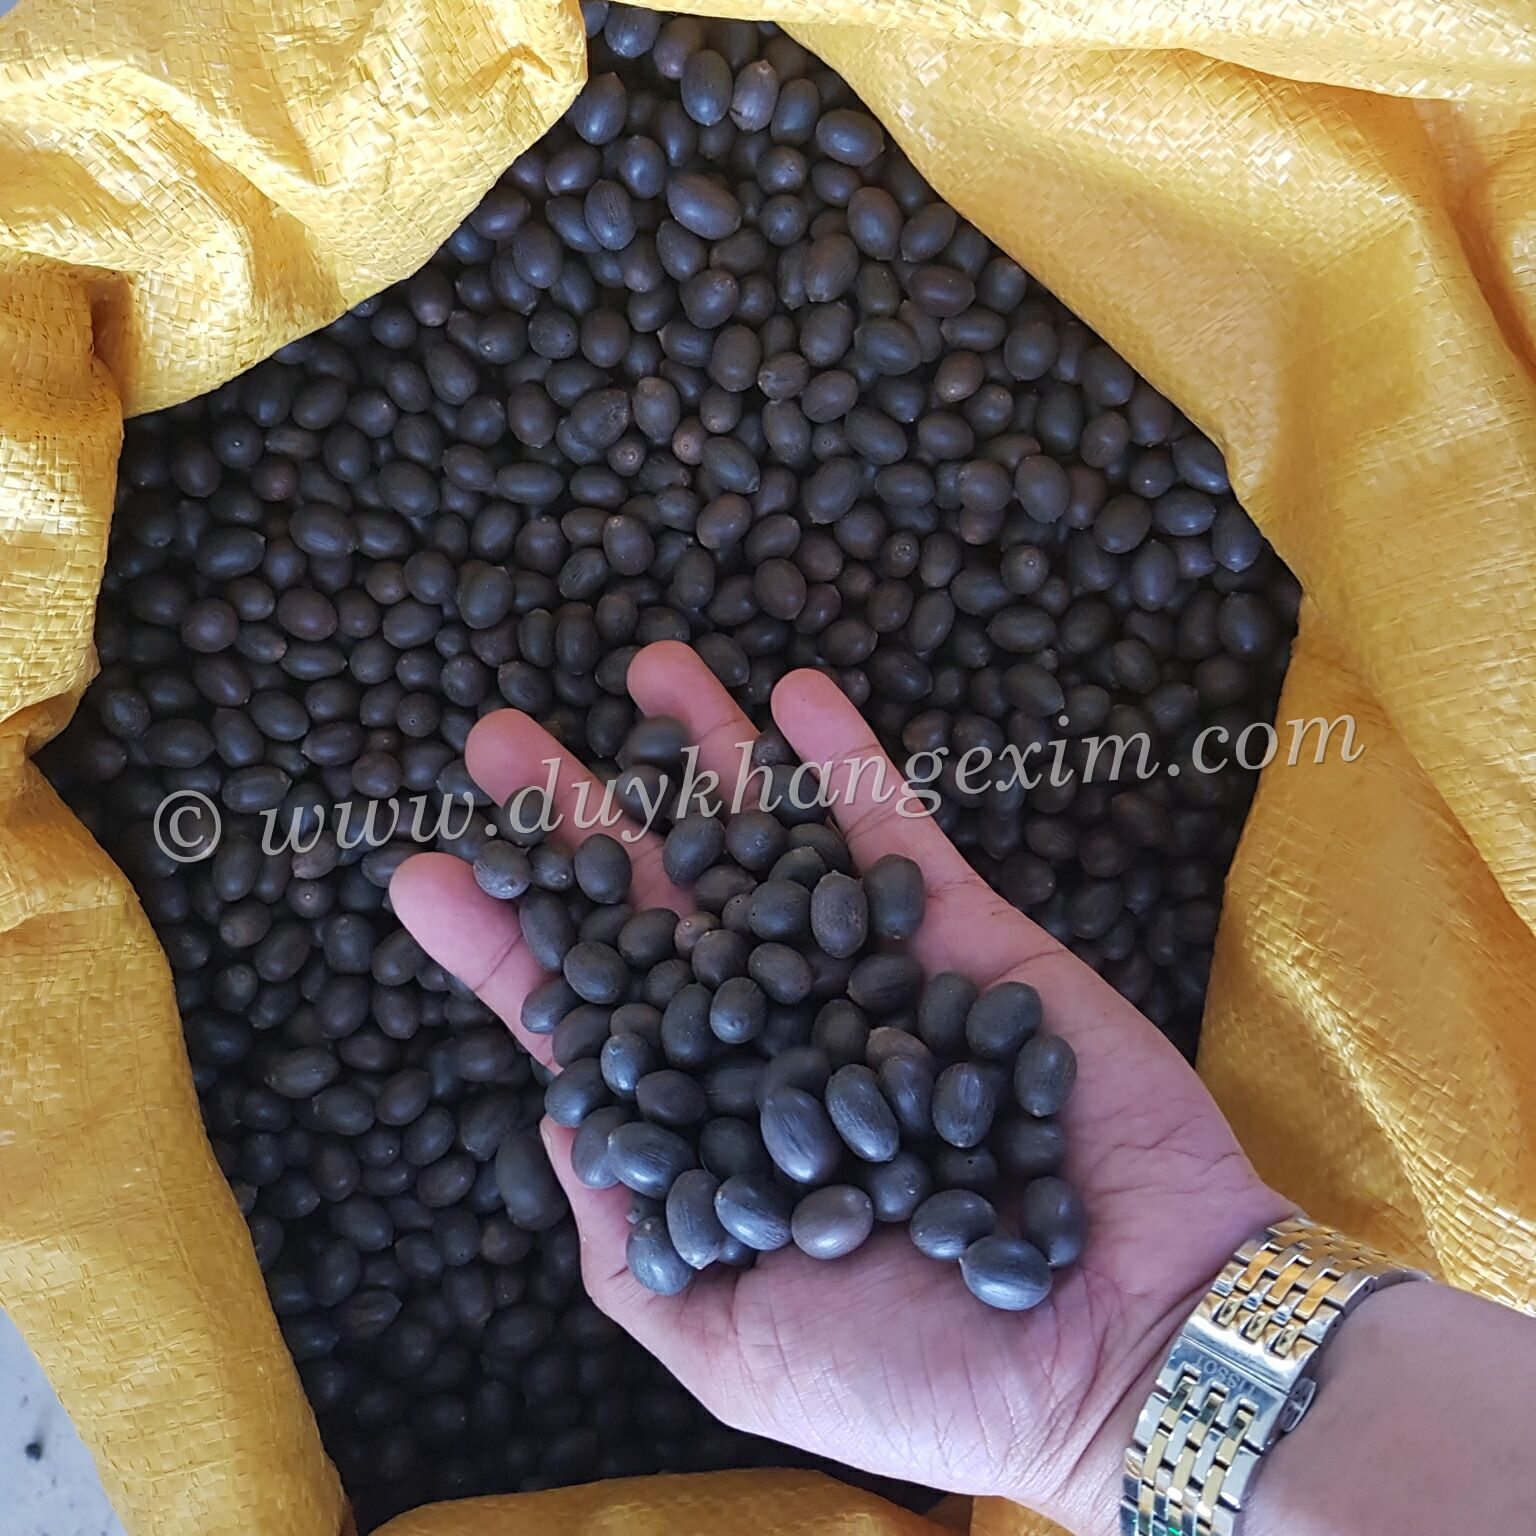 DRIED BLACK LOTUS SEEDS WITH ATTRACTIVE PRICE, BEST QUALITY